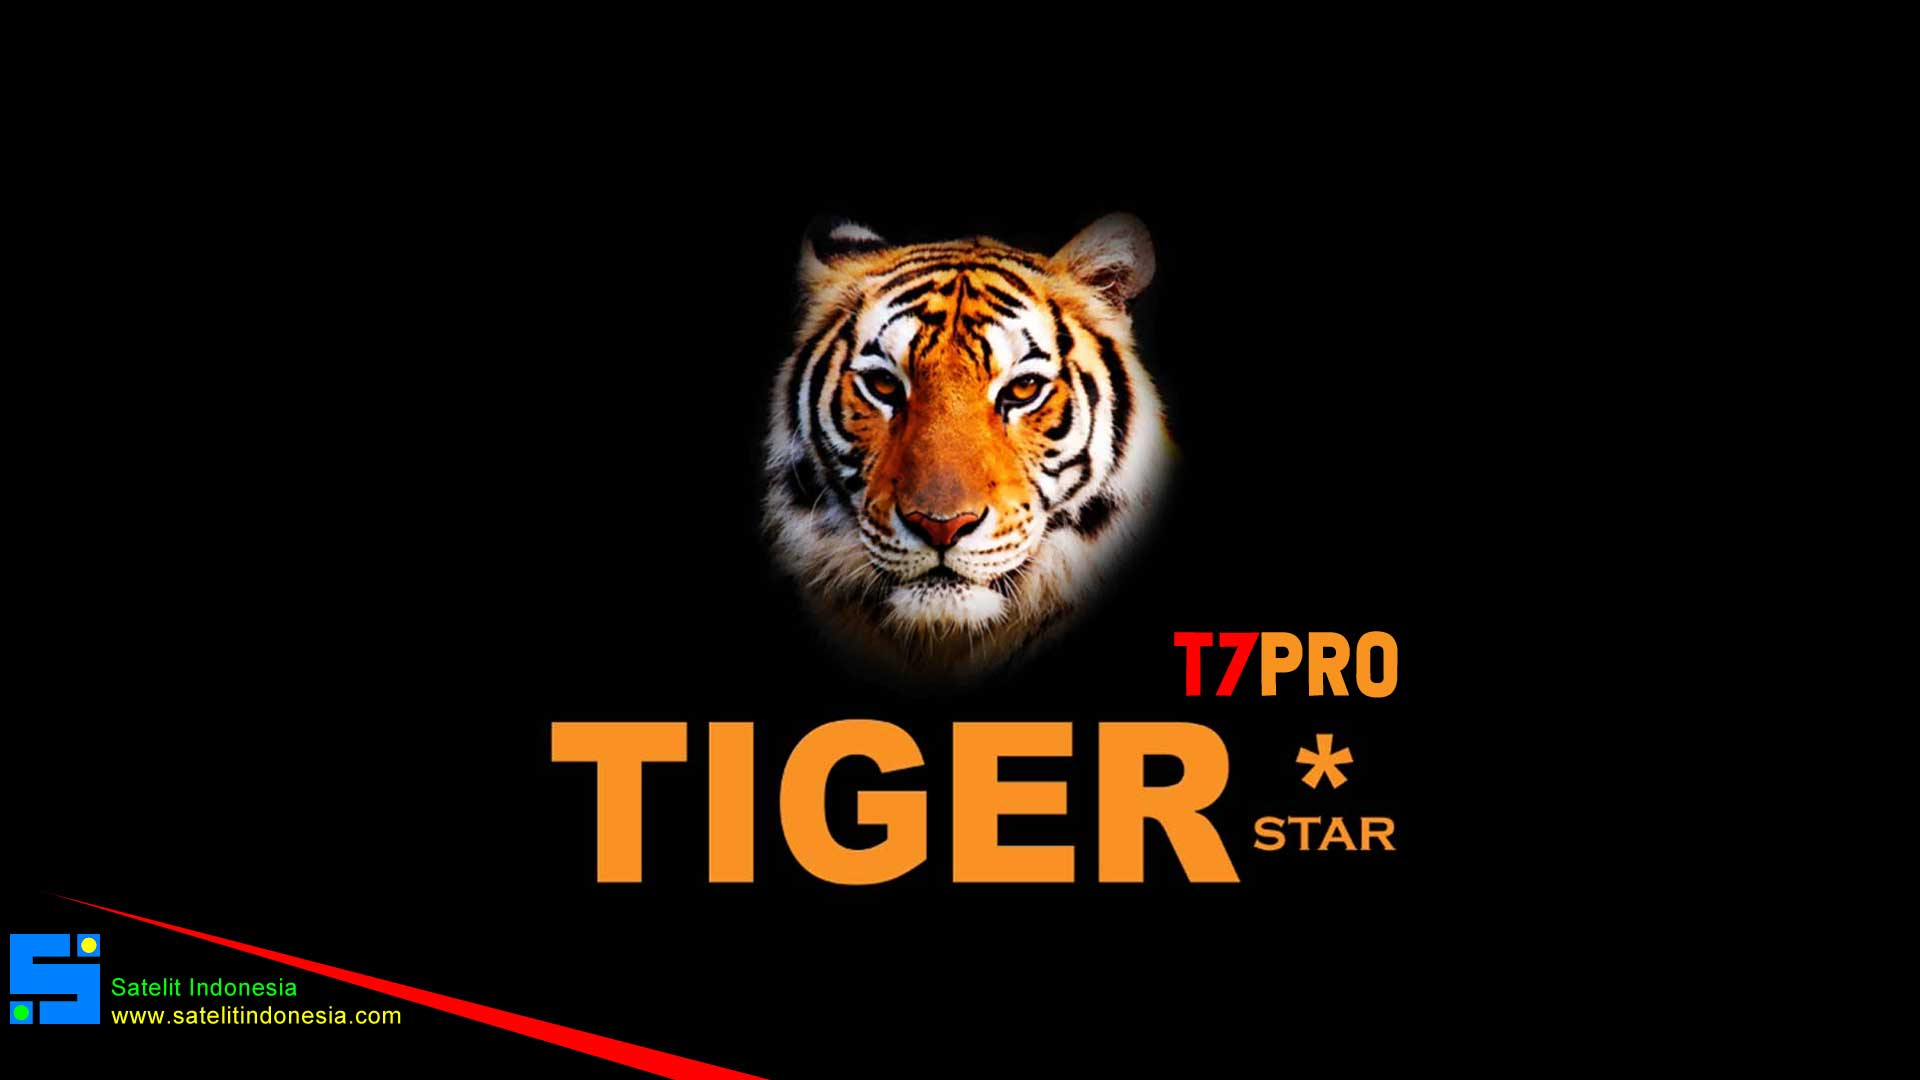 Download Software Tiger Star T7 Pro New Update Firmware Receiver